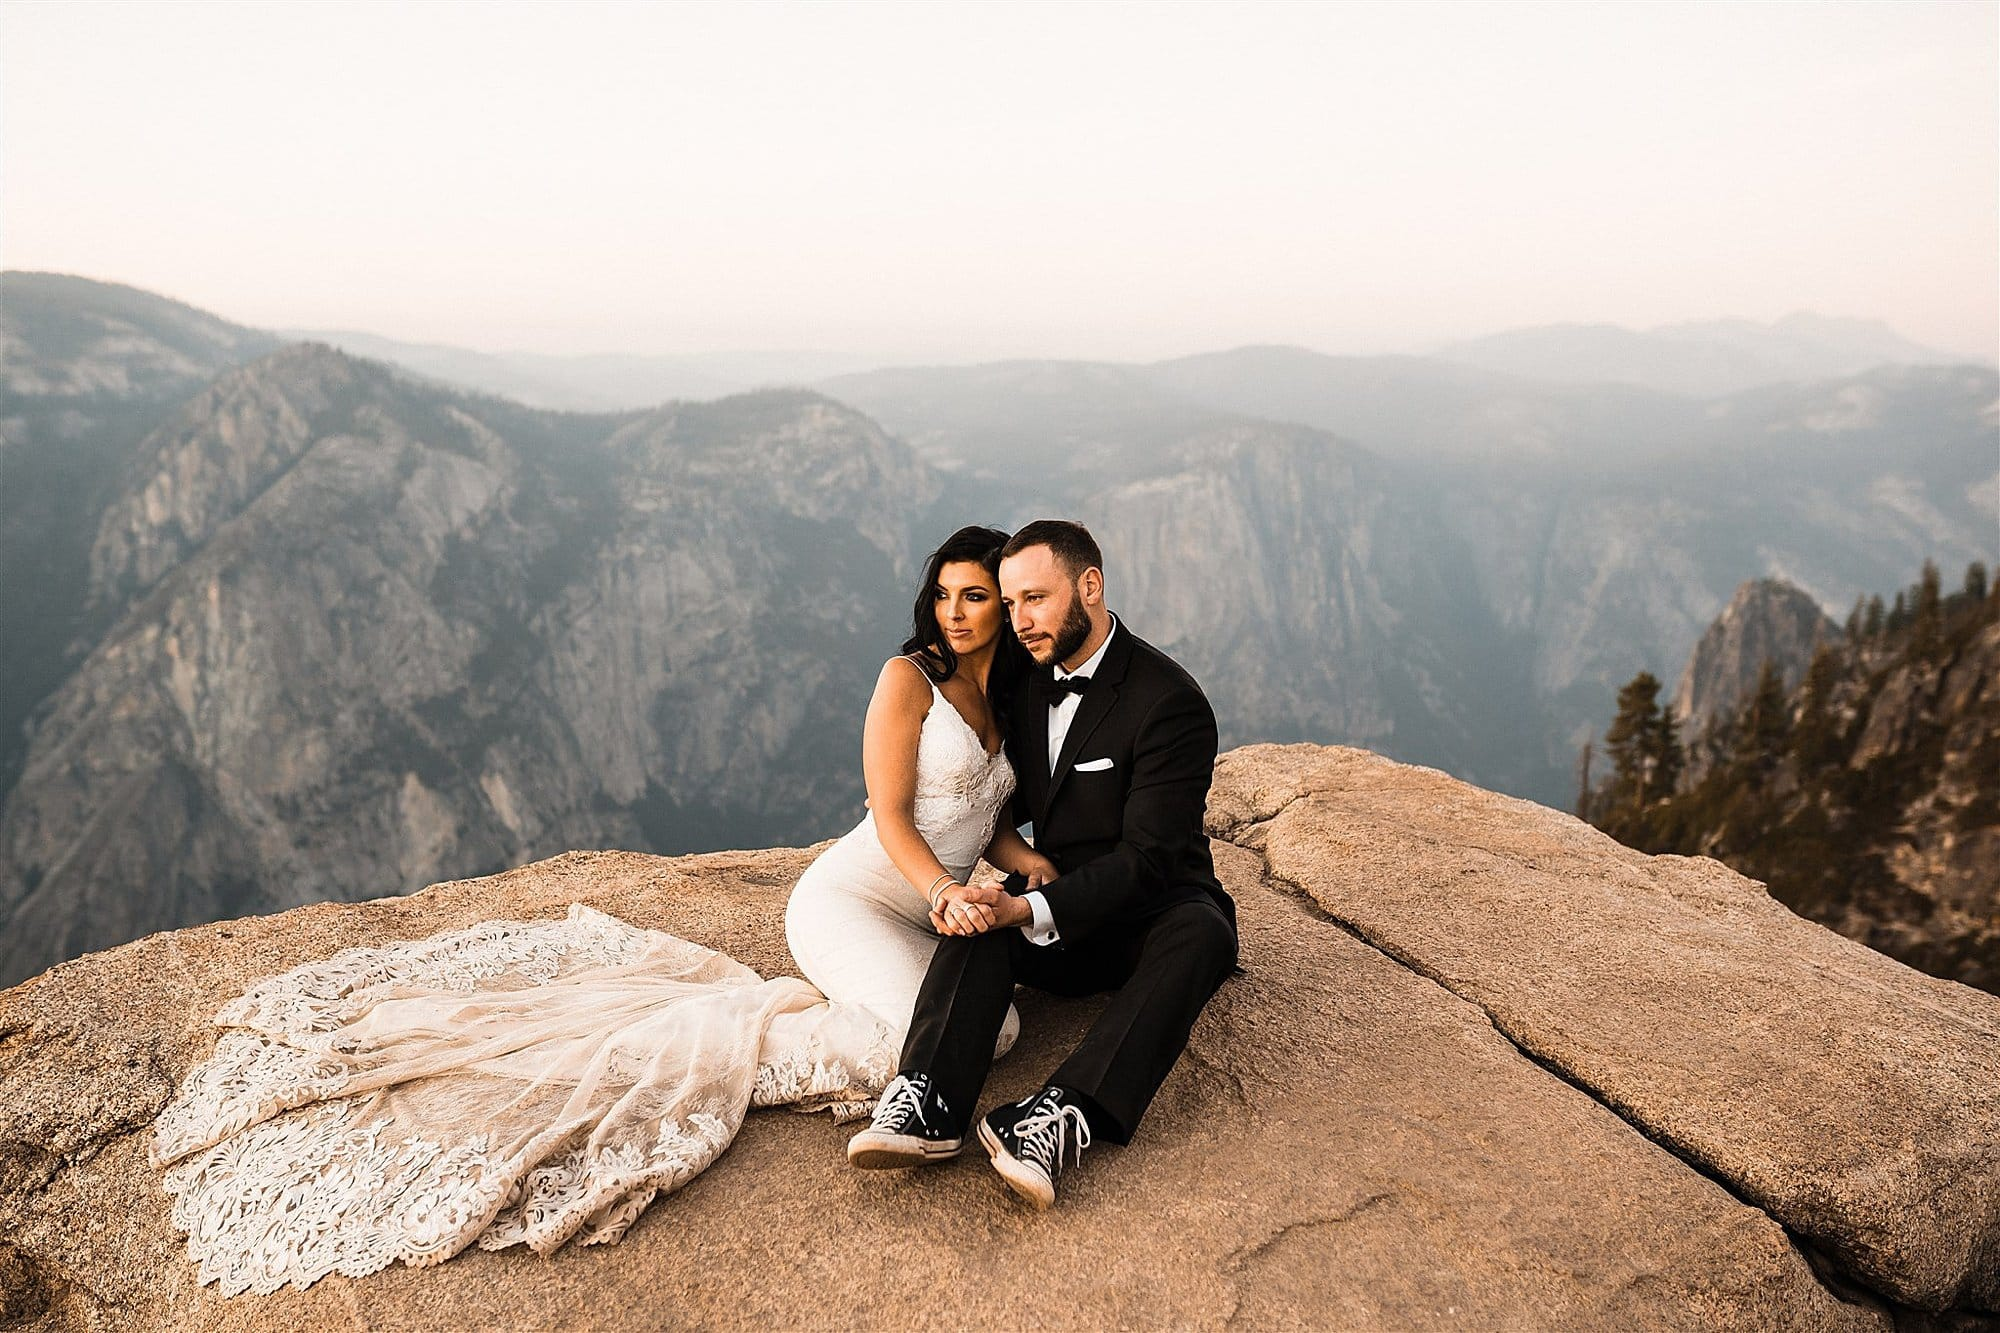 Taft_Point_Elopement_The_Foxes_Photography_0018.jpg